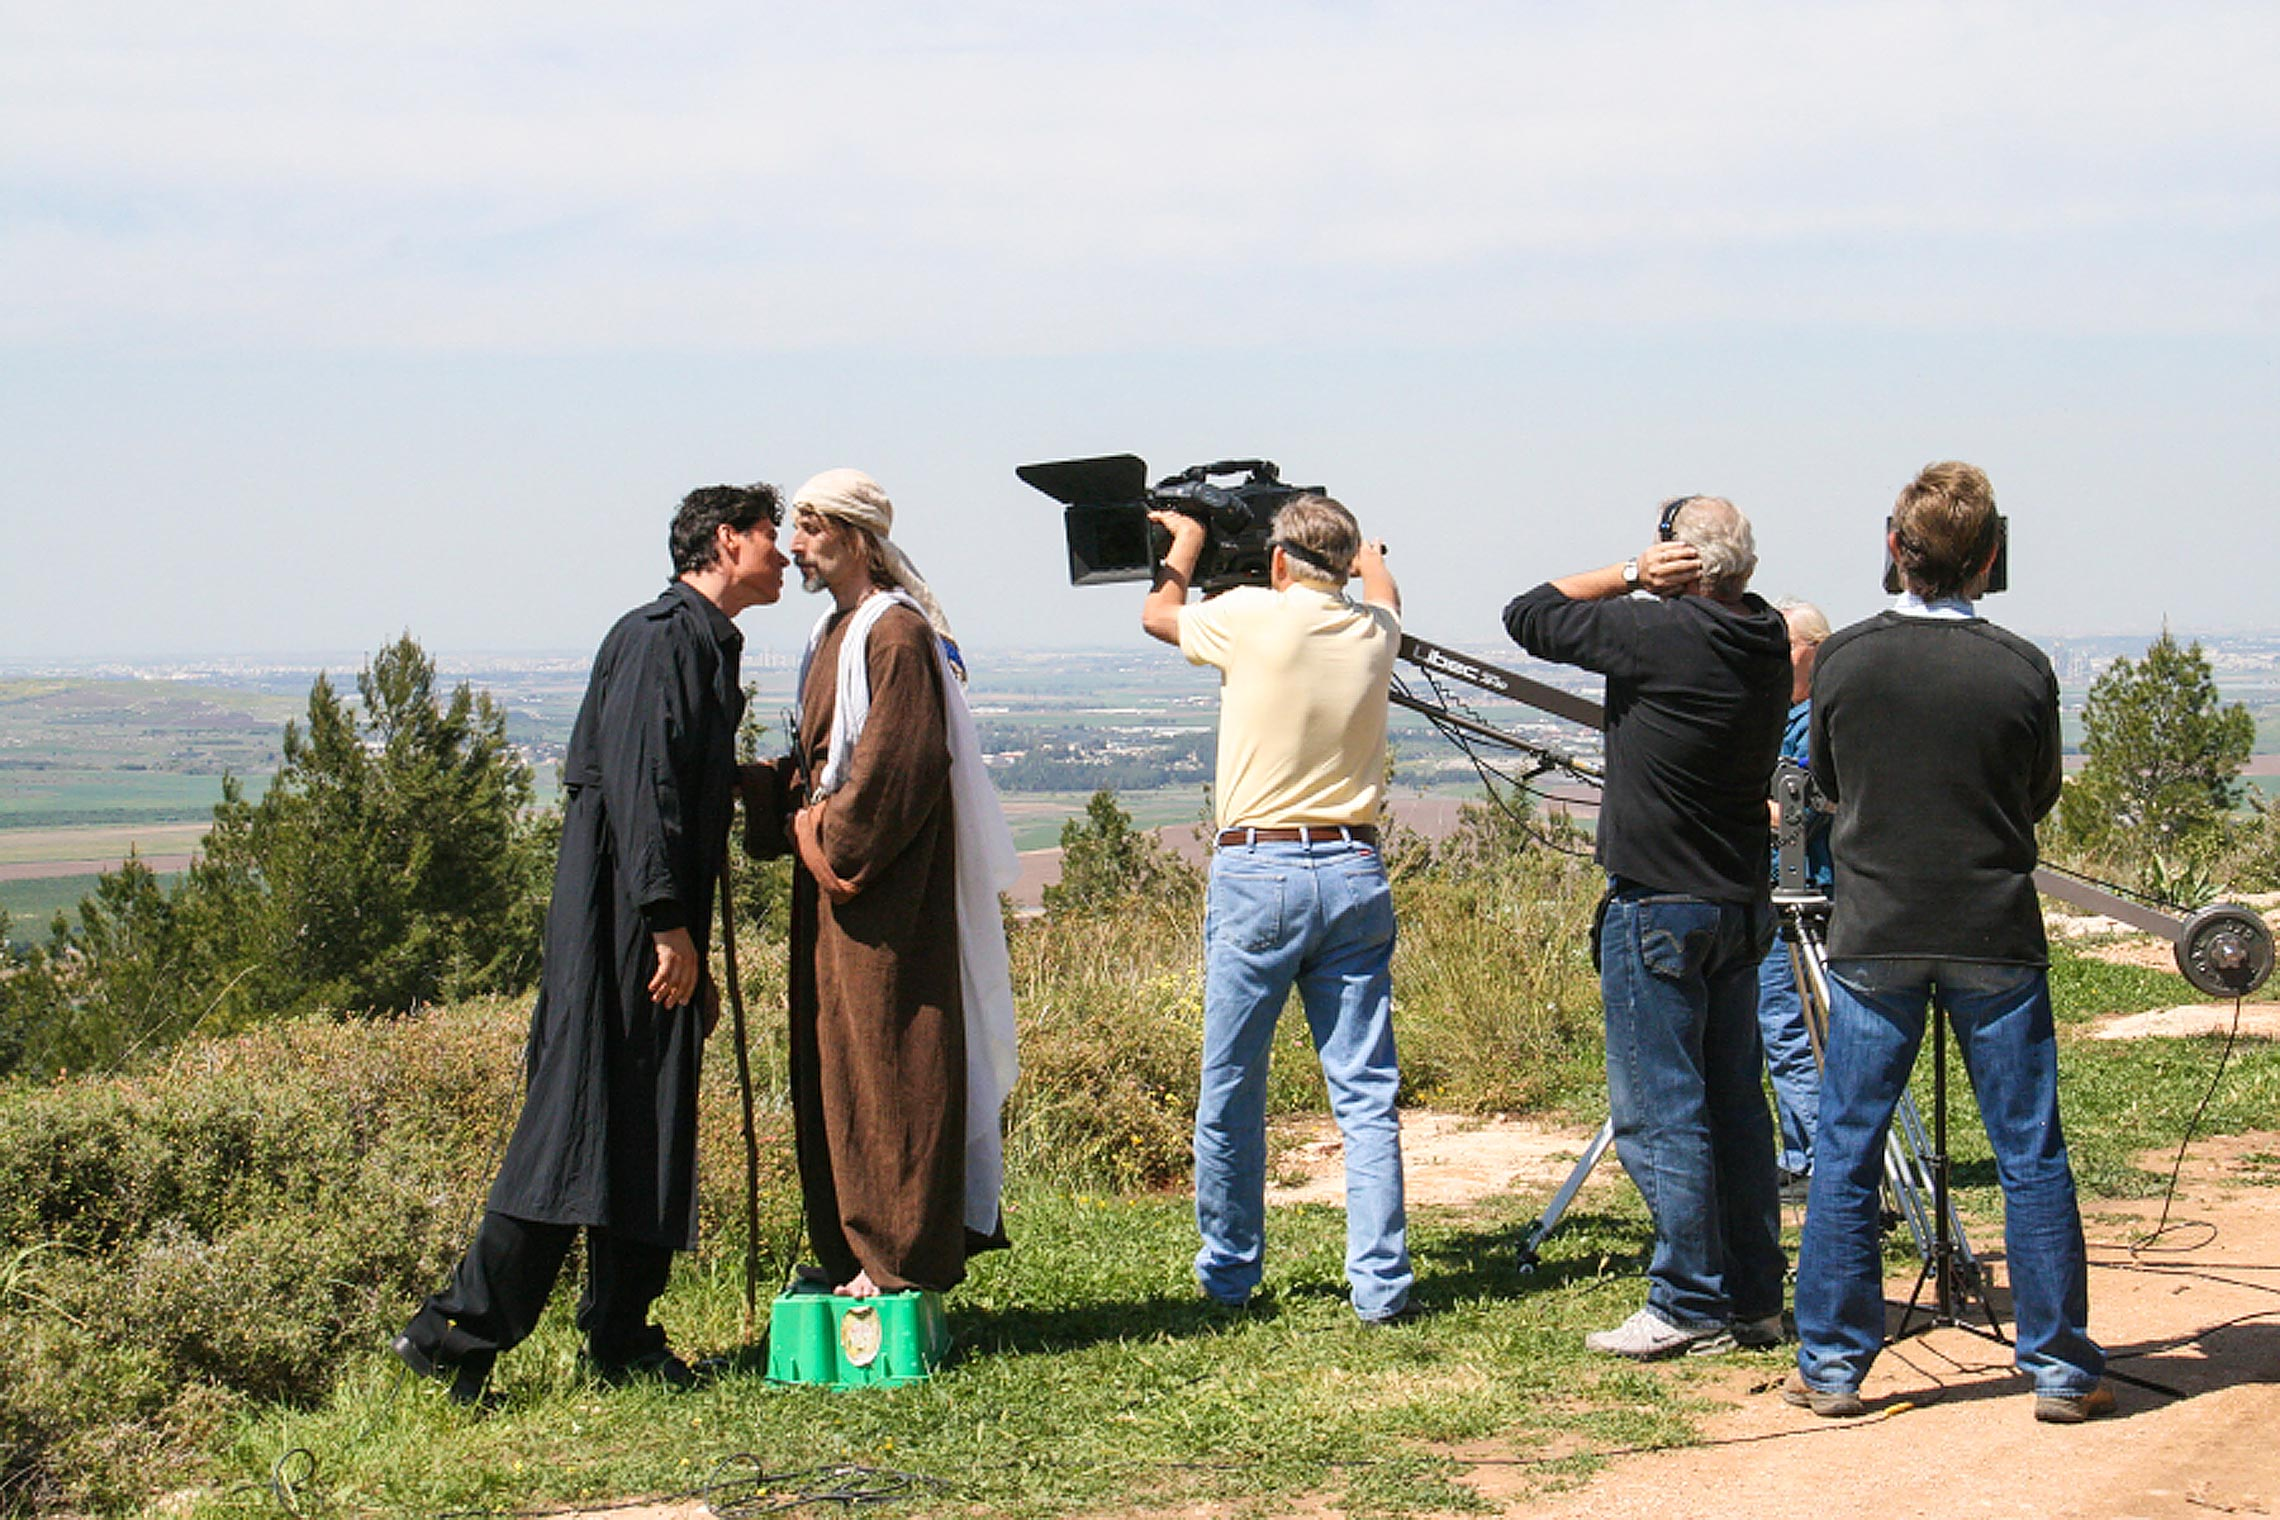 Shooting the temptation scene where the Devil tempts Jesus in <em>The Dark Prince</em>.